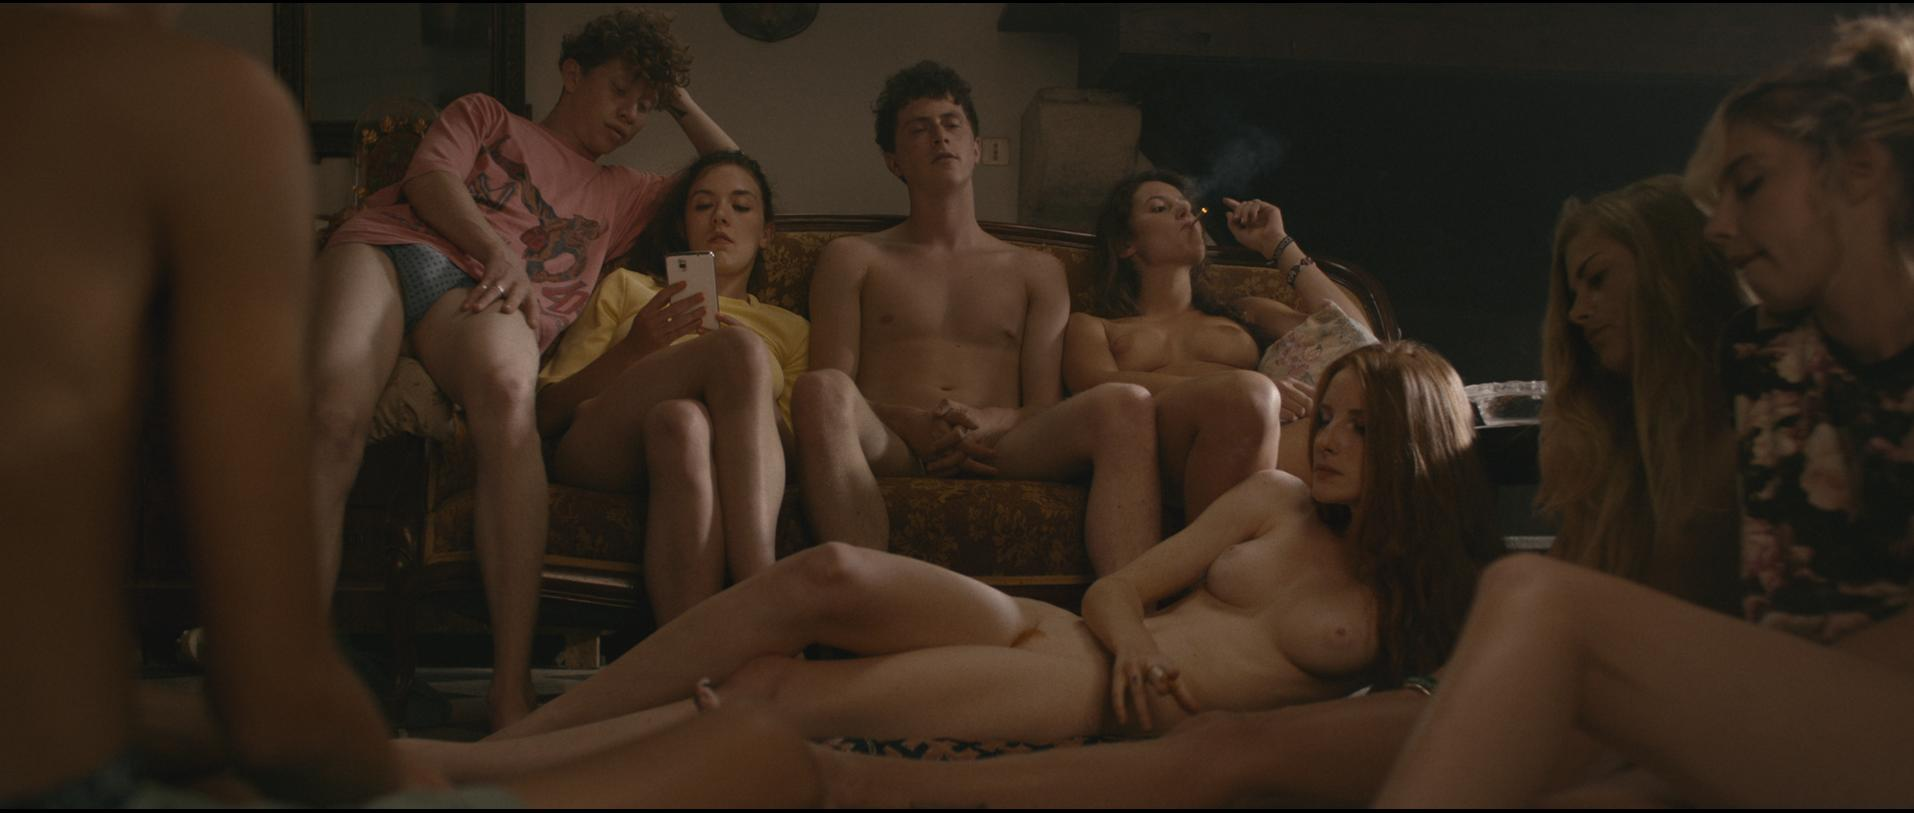 gang bang films sexopstrand